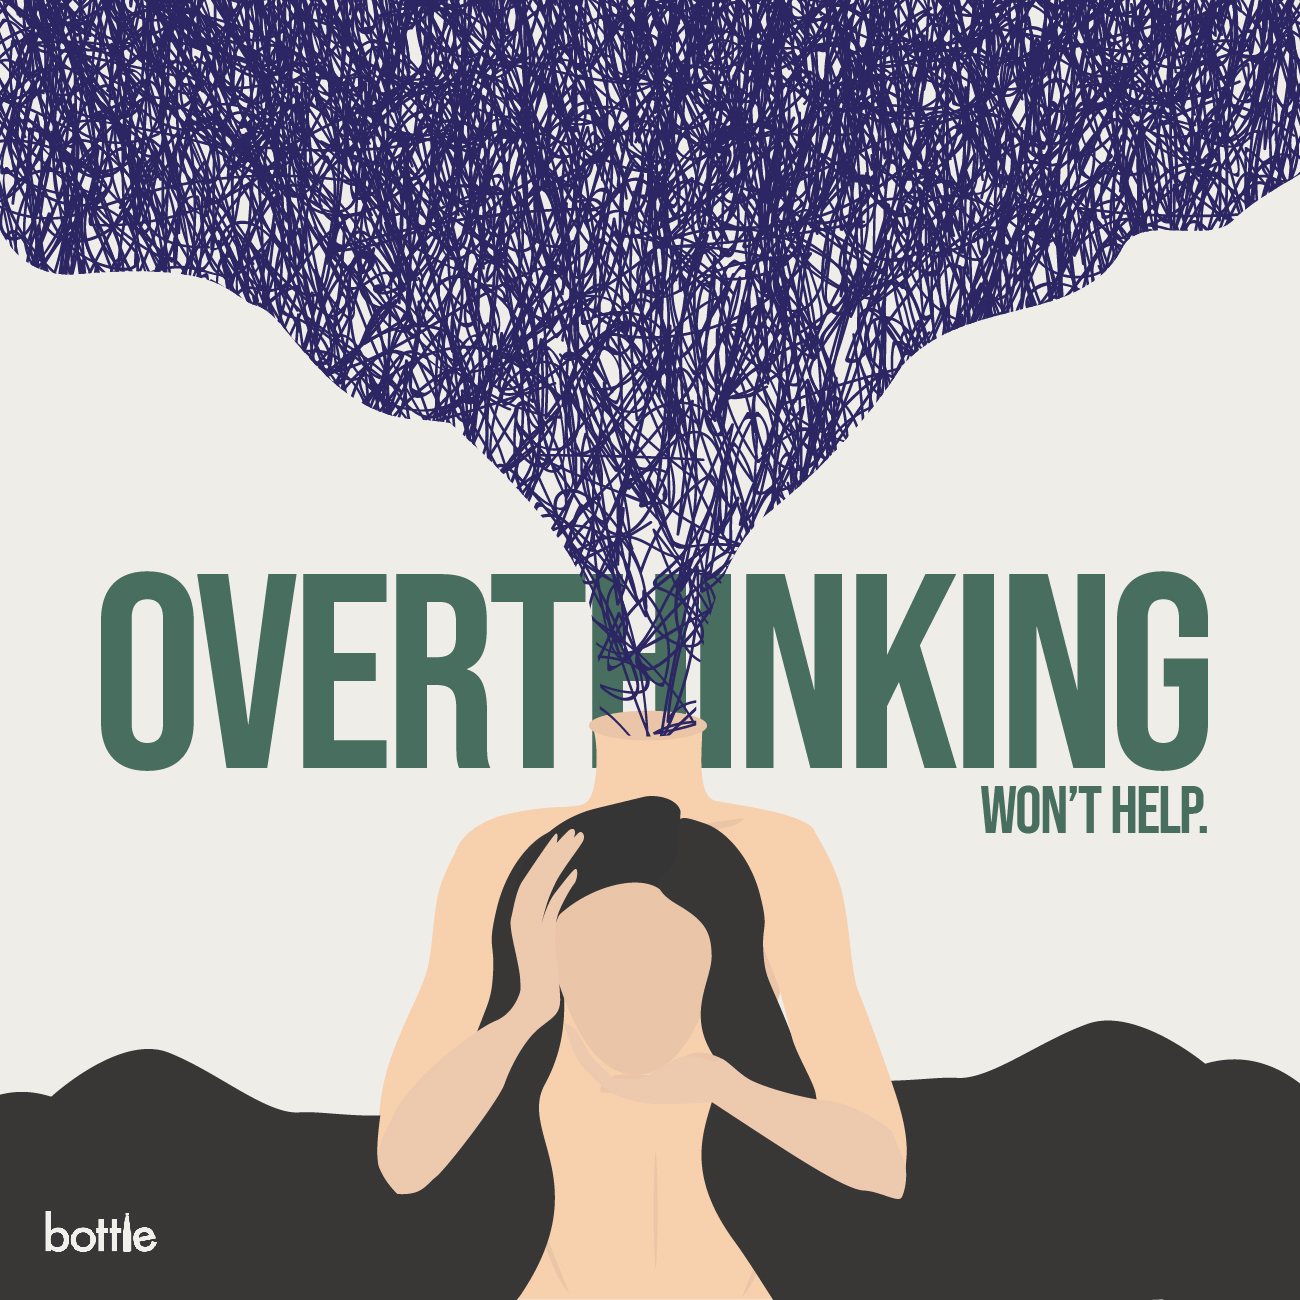 How To Tackle Overthinking?